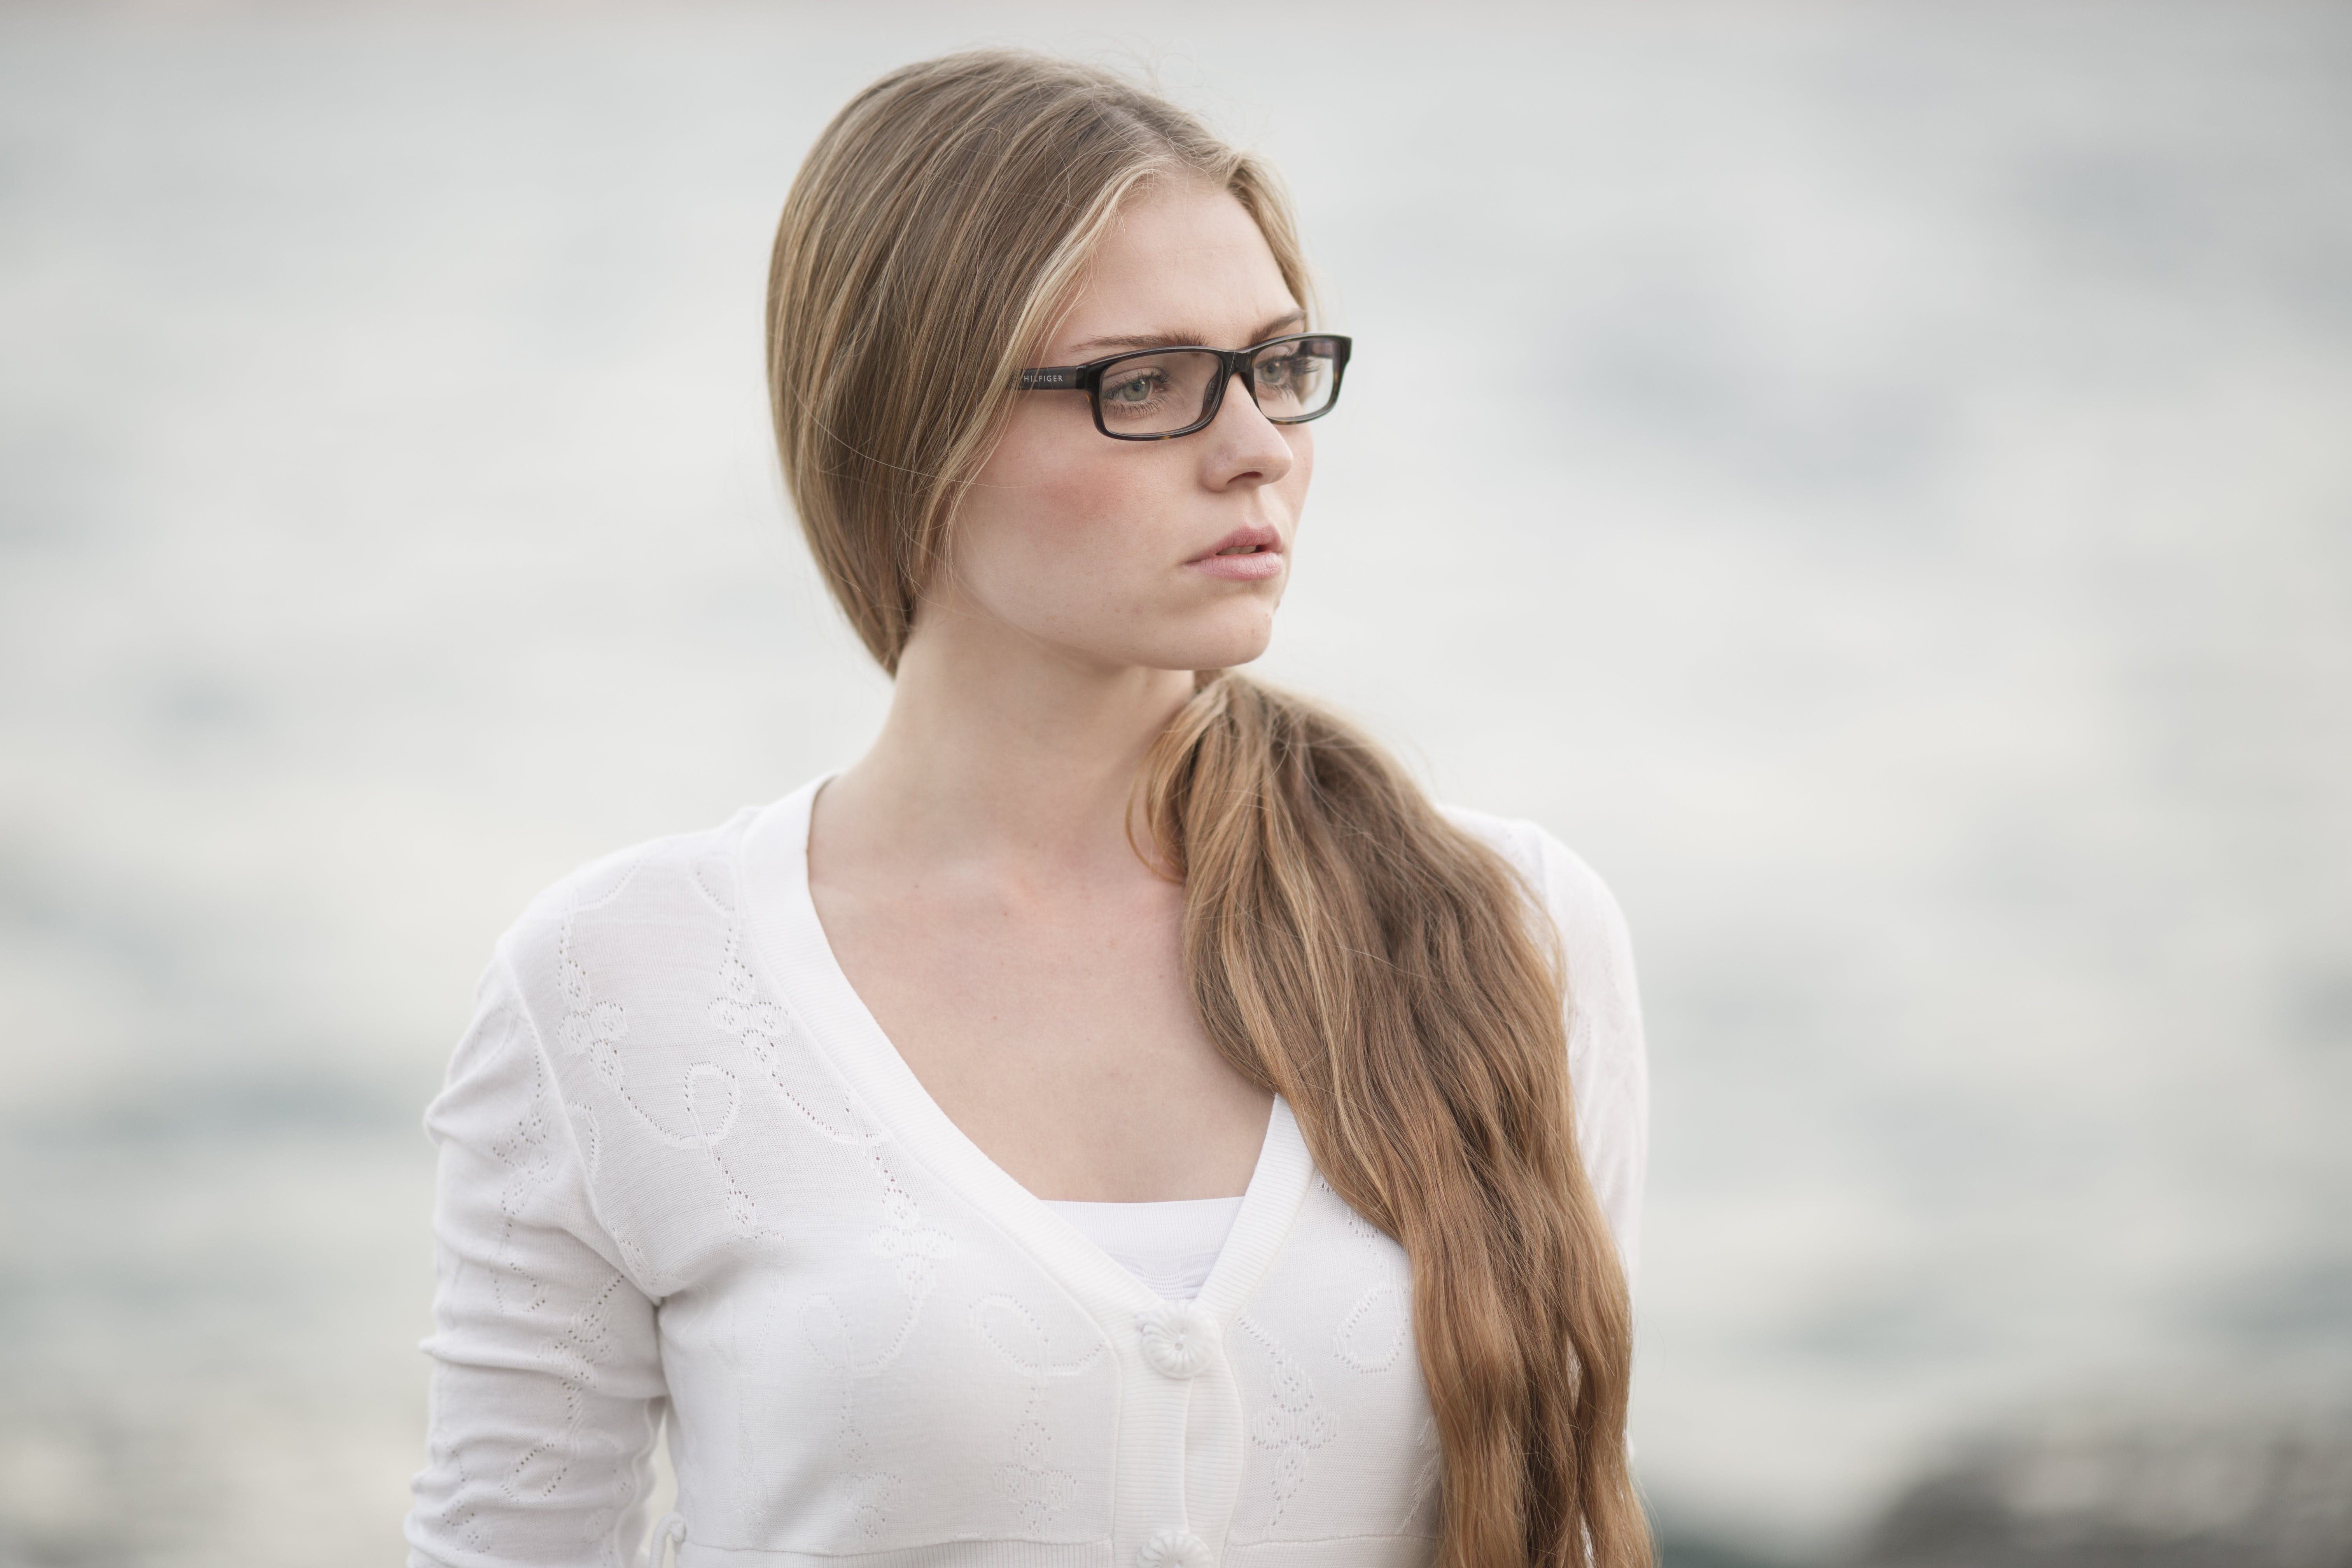 Woman Wearing Eyeglasses Standing